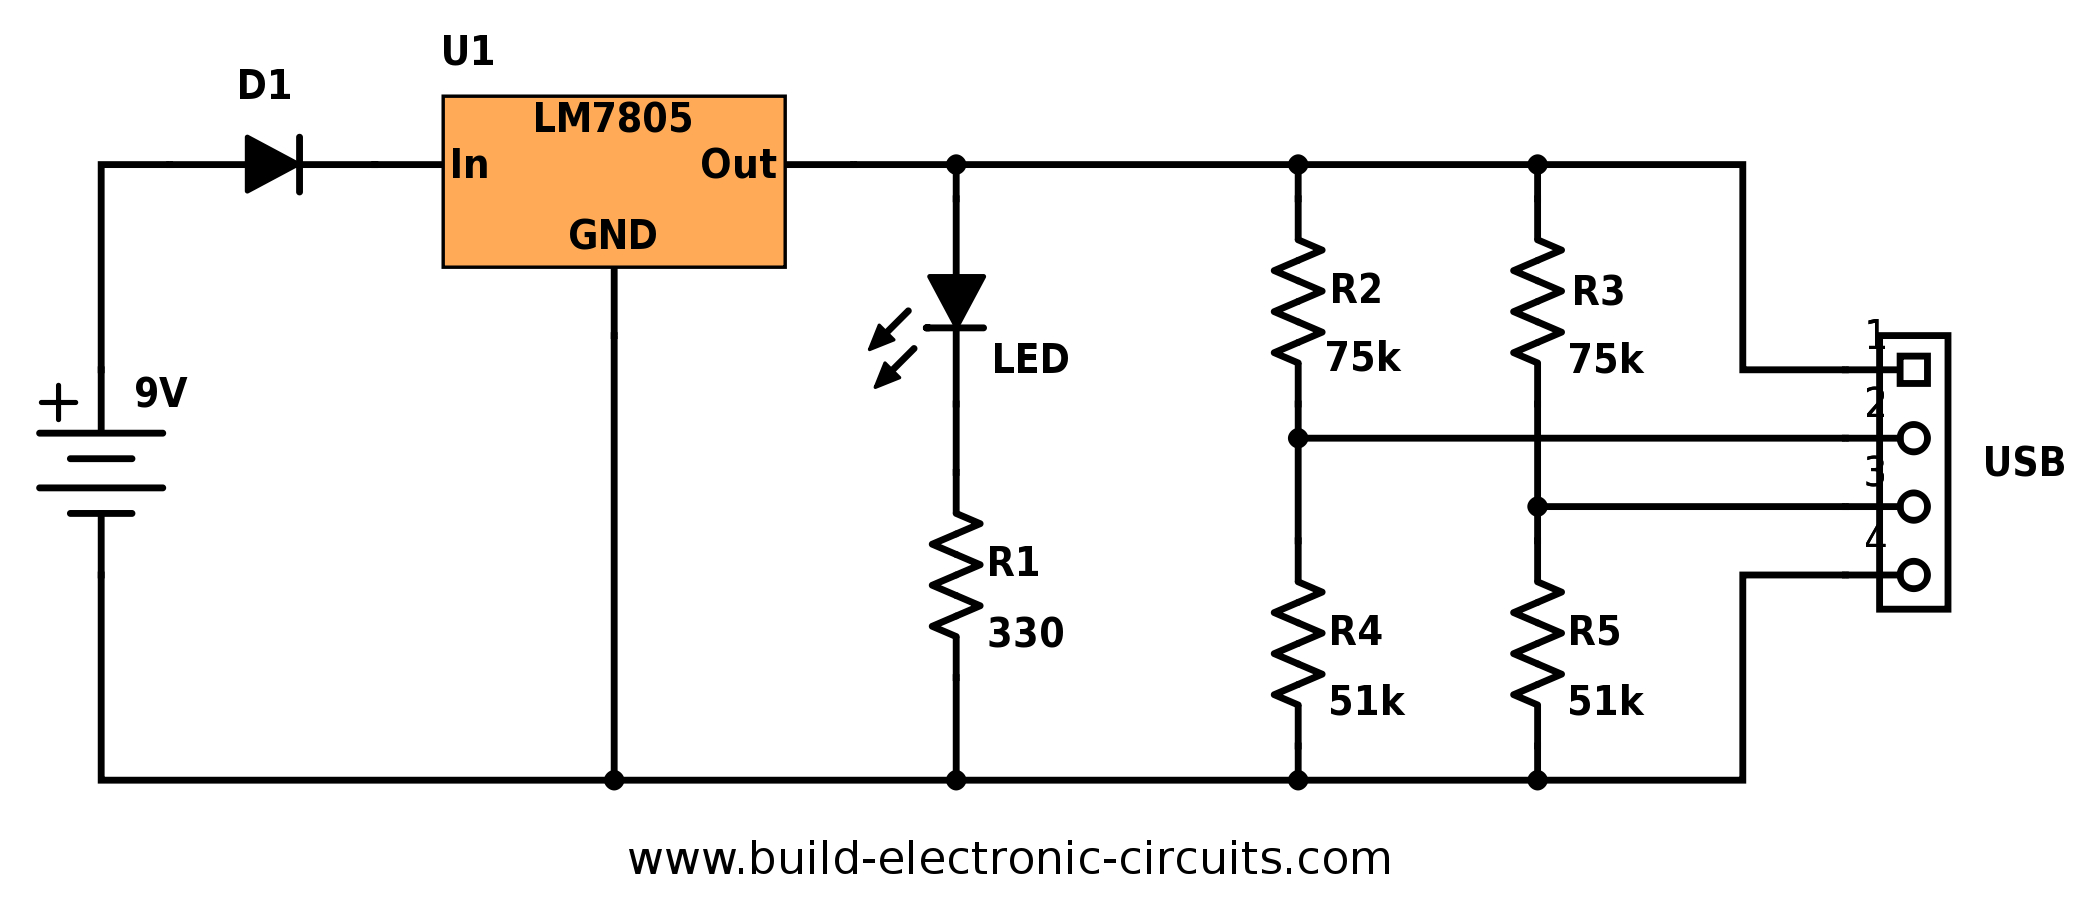 Usb Power Supply Wiring Diagram | Wiring Diagram - Usb Power Wiring Diagram